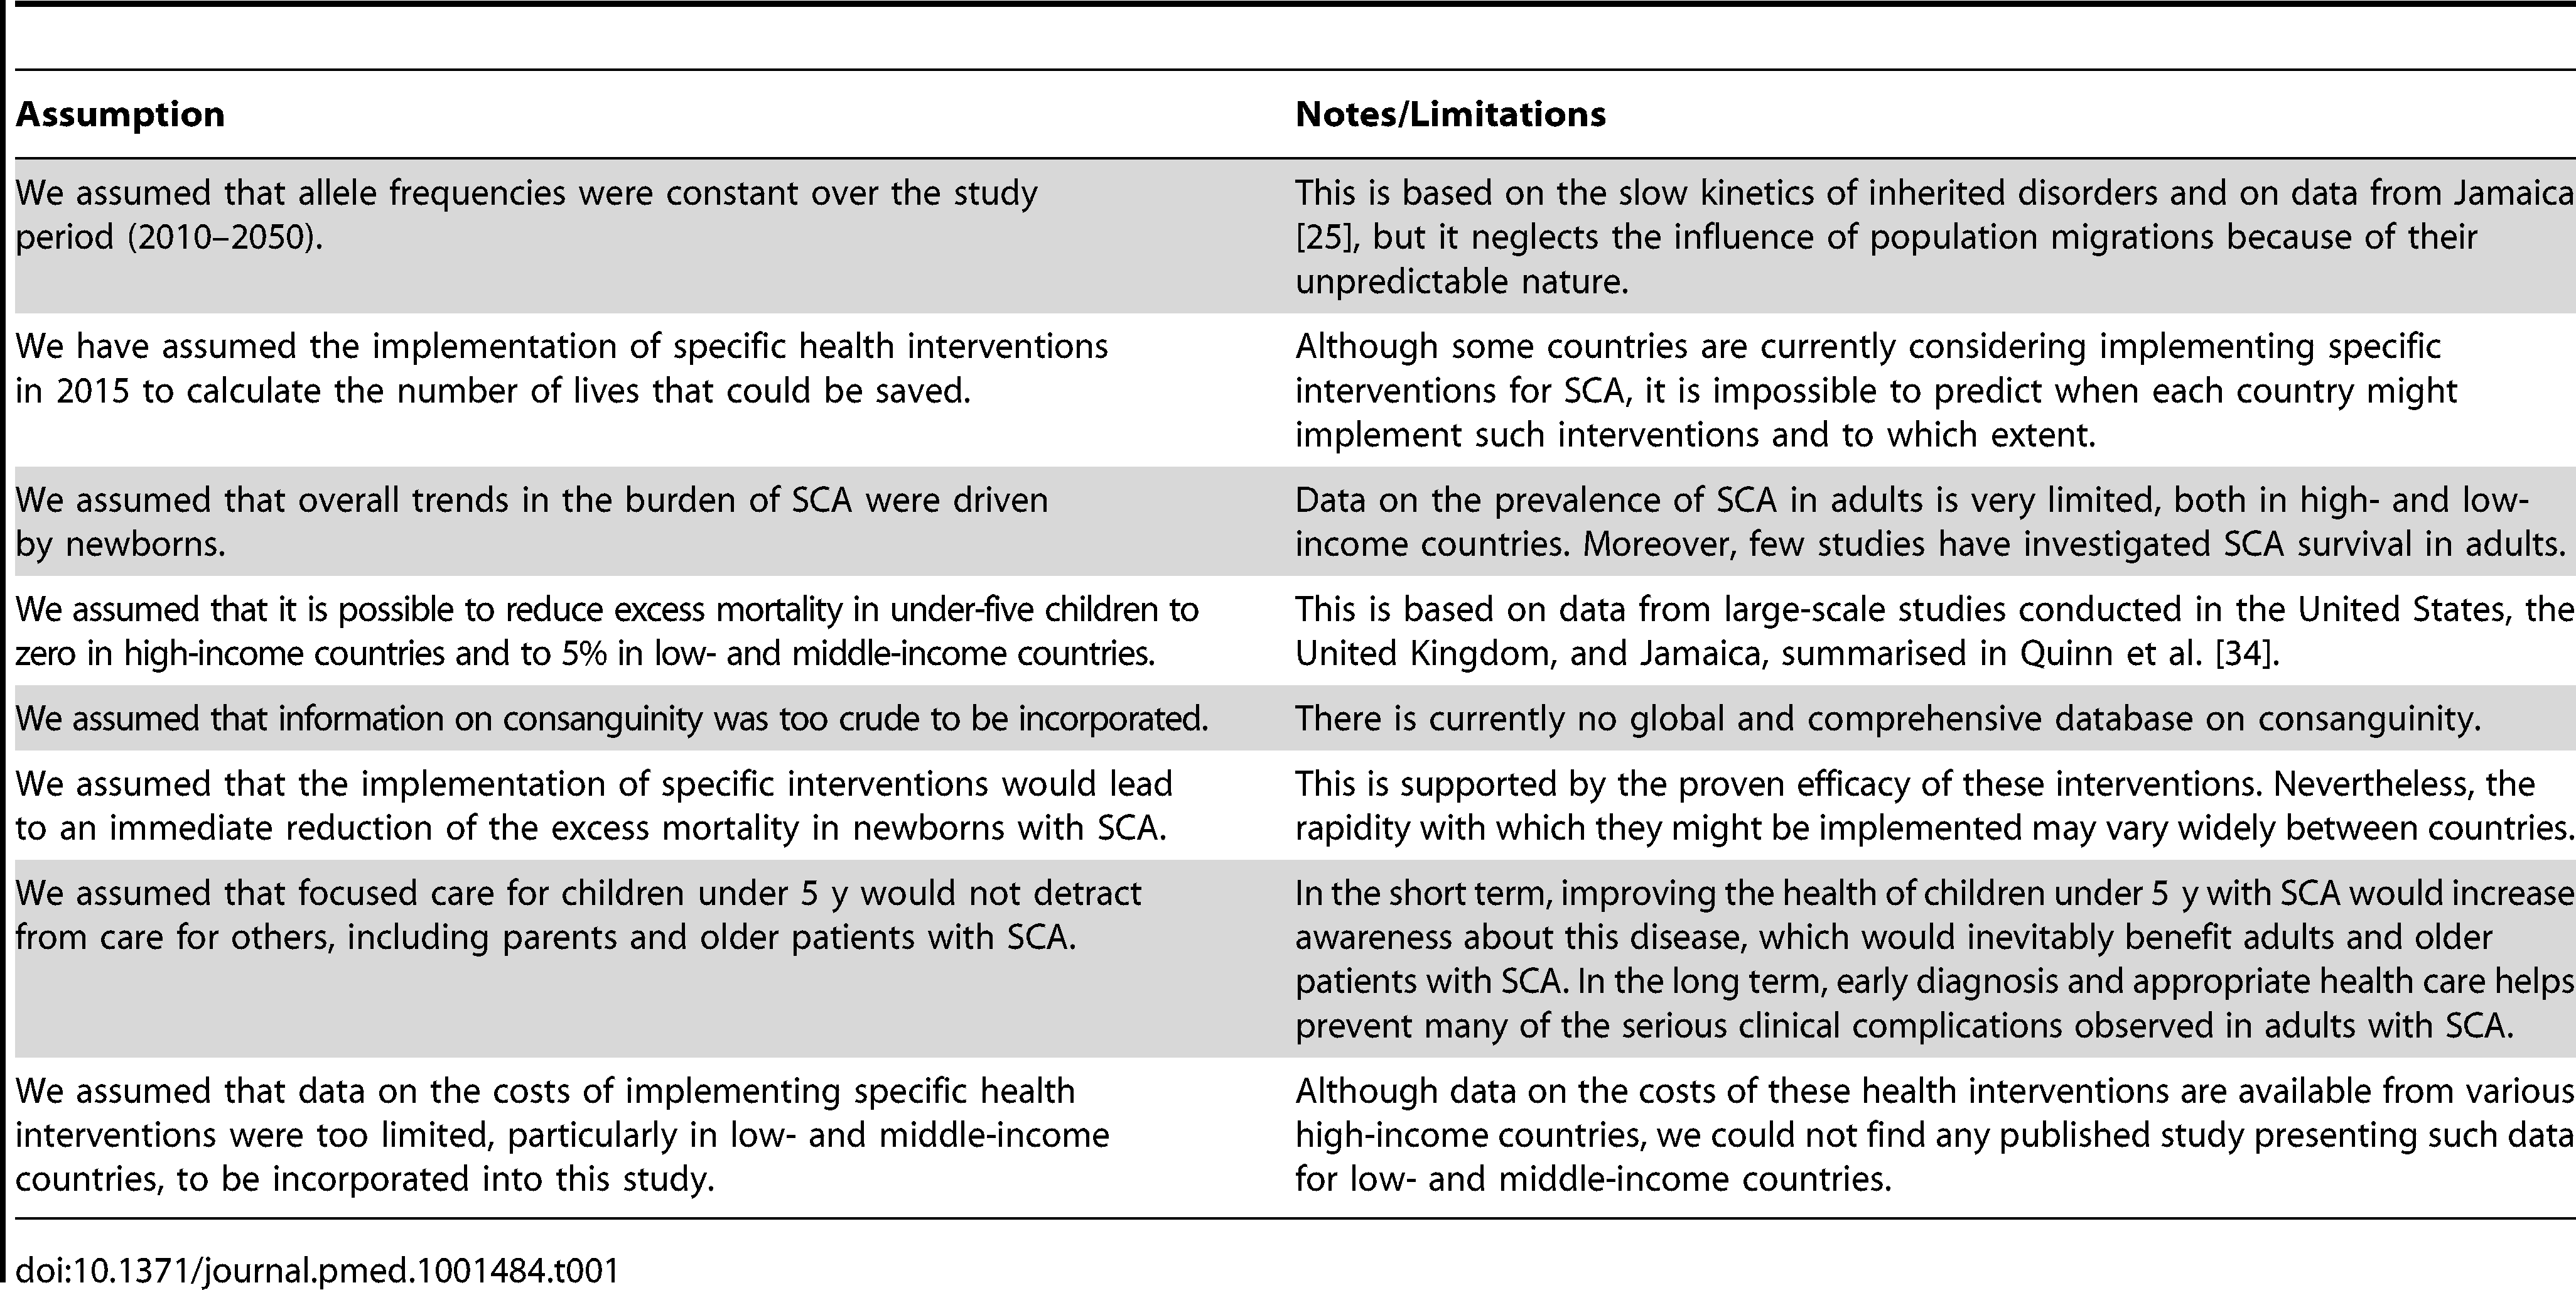 Summary of the assumptions and limitations of this study.